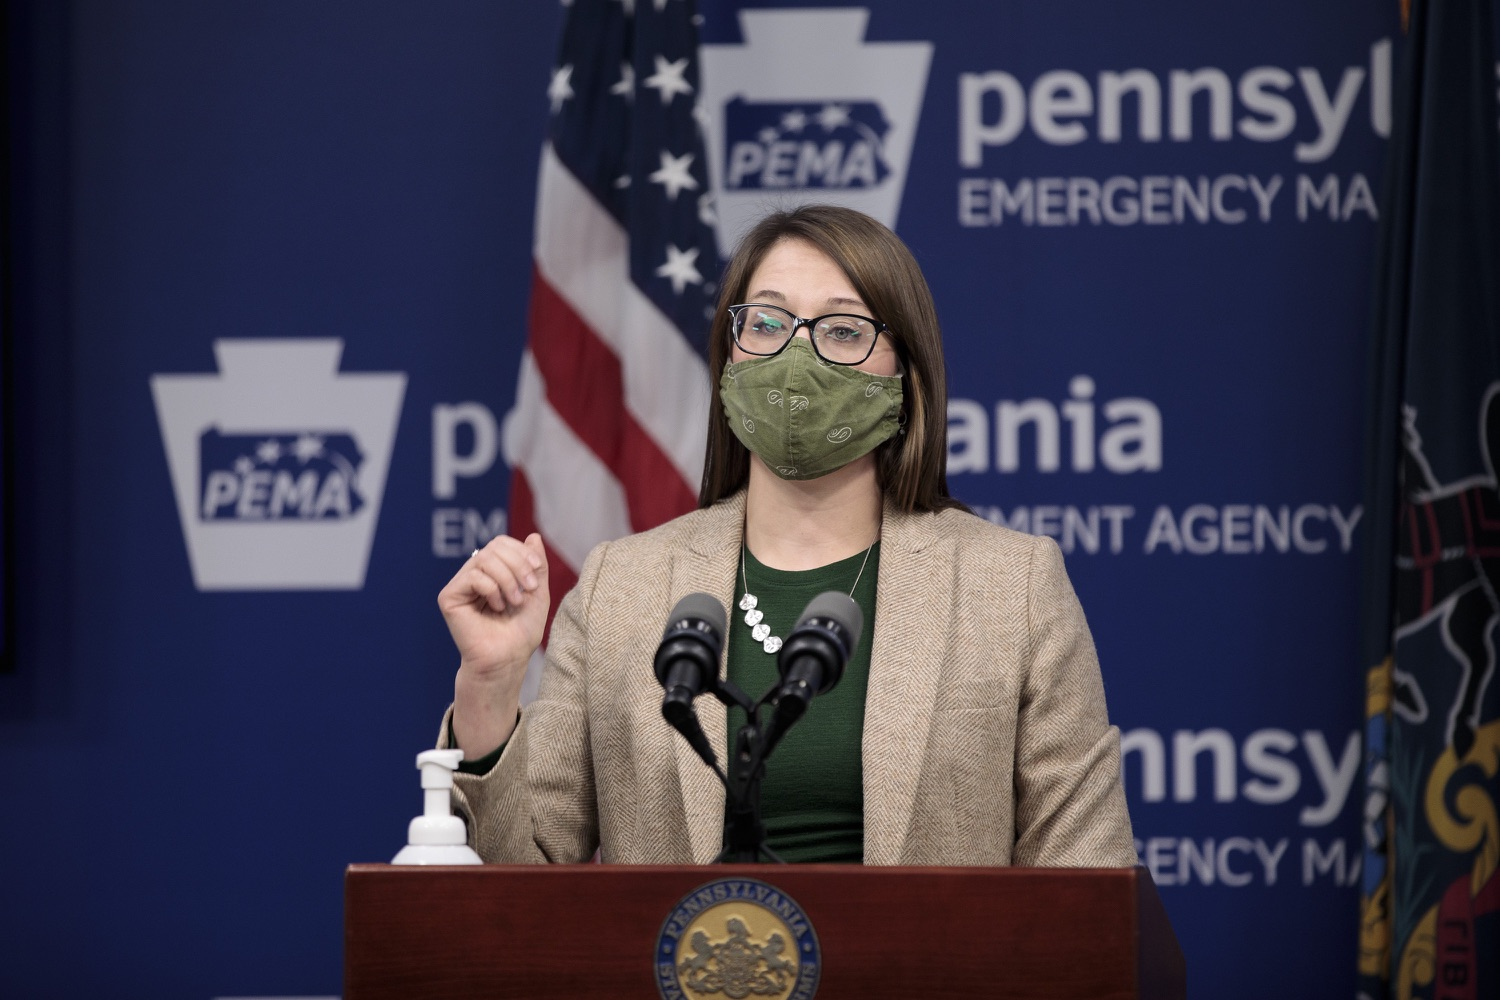 """<a href=""""https://filesource.wostreaming.net/commonwealthofpa/photo/18524_doh_vaccine_dz_09.JPG"""" target=""""_blank"""">⇣Download Photo<br></a>Department of Health Senior Advisor Lindsey Mauldin speaking at the press conference.  The Pennsylvania Department of Health today launched a new tool called Your Turn to help Pennsylvanians understand where they fall in the vaccine prioritization effort and to be alerted when it is their turn to schedule an appointment for the COVID-19 vaccine.  Harrisburg, PA  February 9, 2021"""